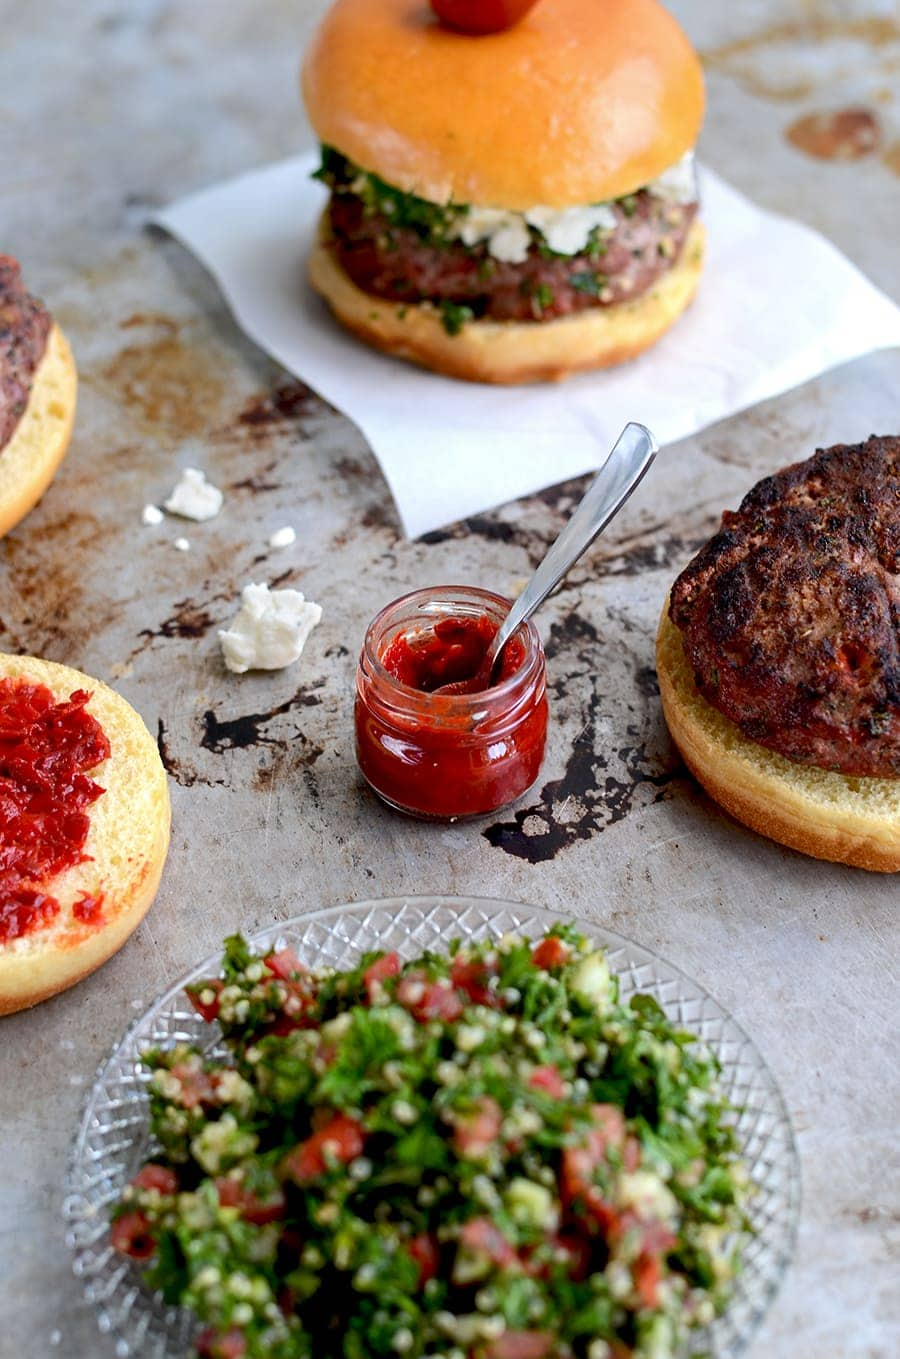 Harissa Web - Tabouleh Turkey Burgers with Feta and Harissa